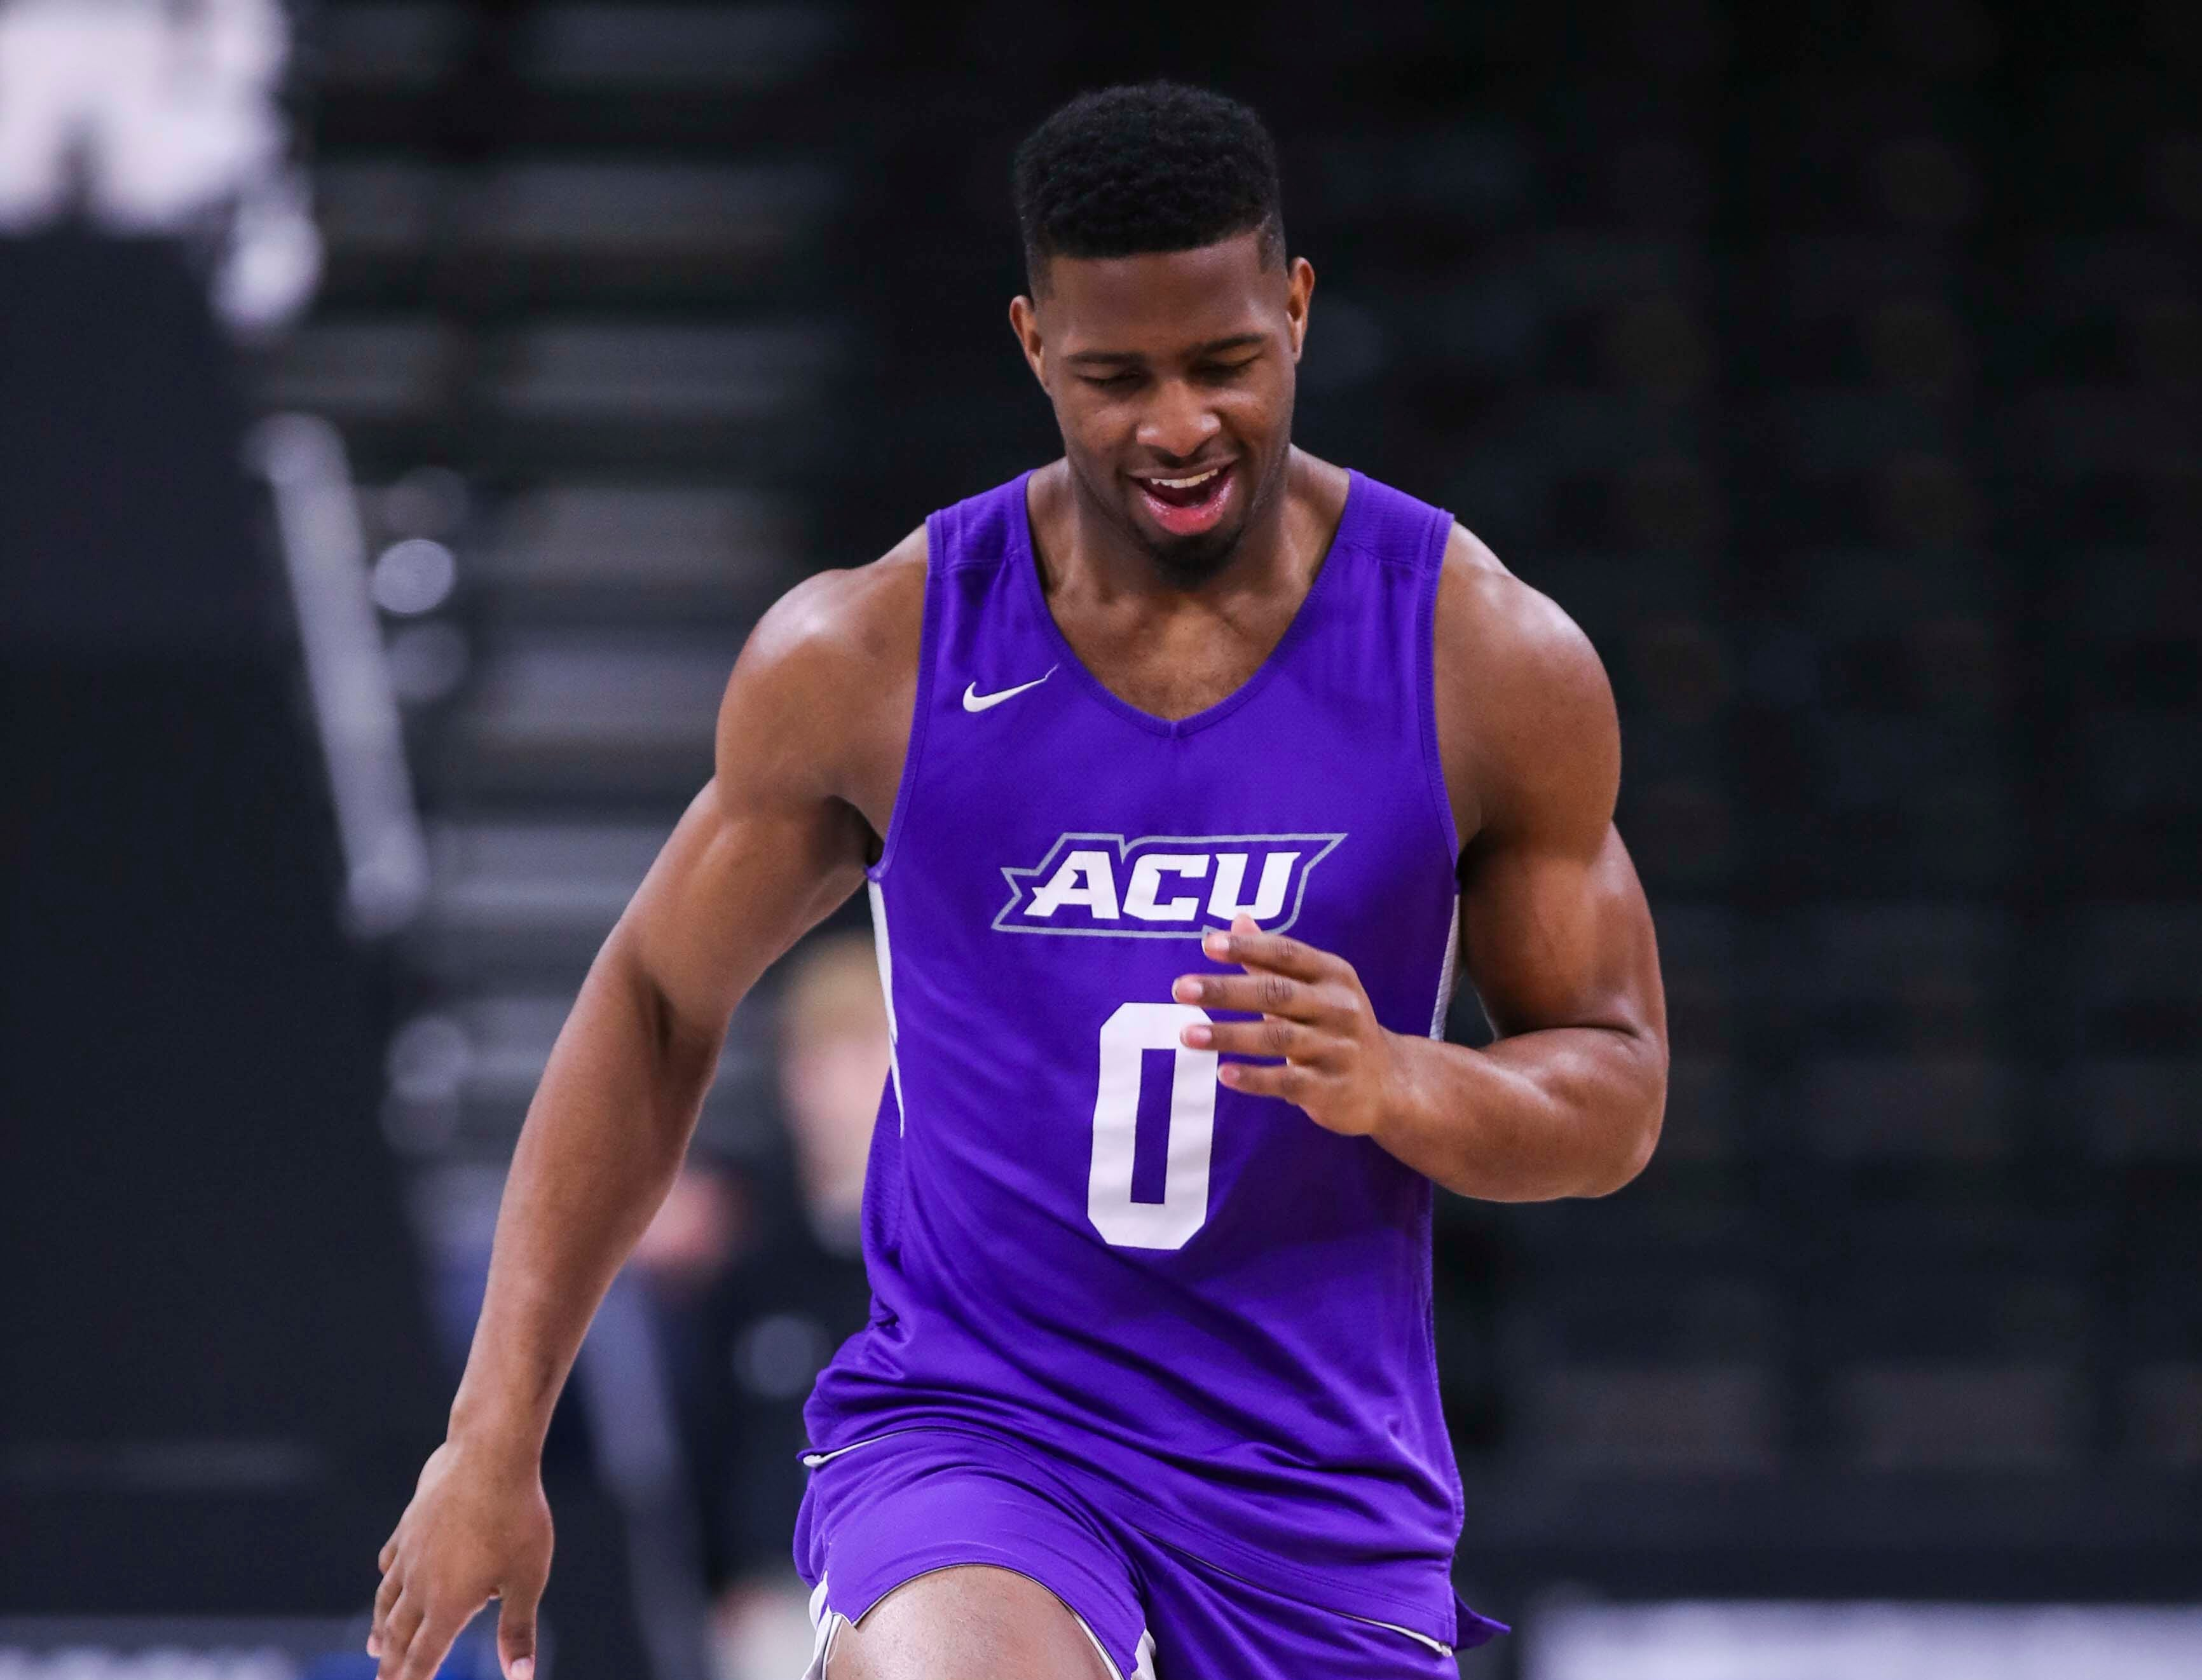 Abilene Christian's Jaylen Franklin warms up Wednesday morning before the start of the Midwest Region of the NCAA tournament. March 20, 2019